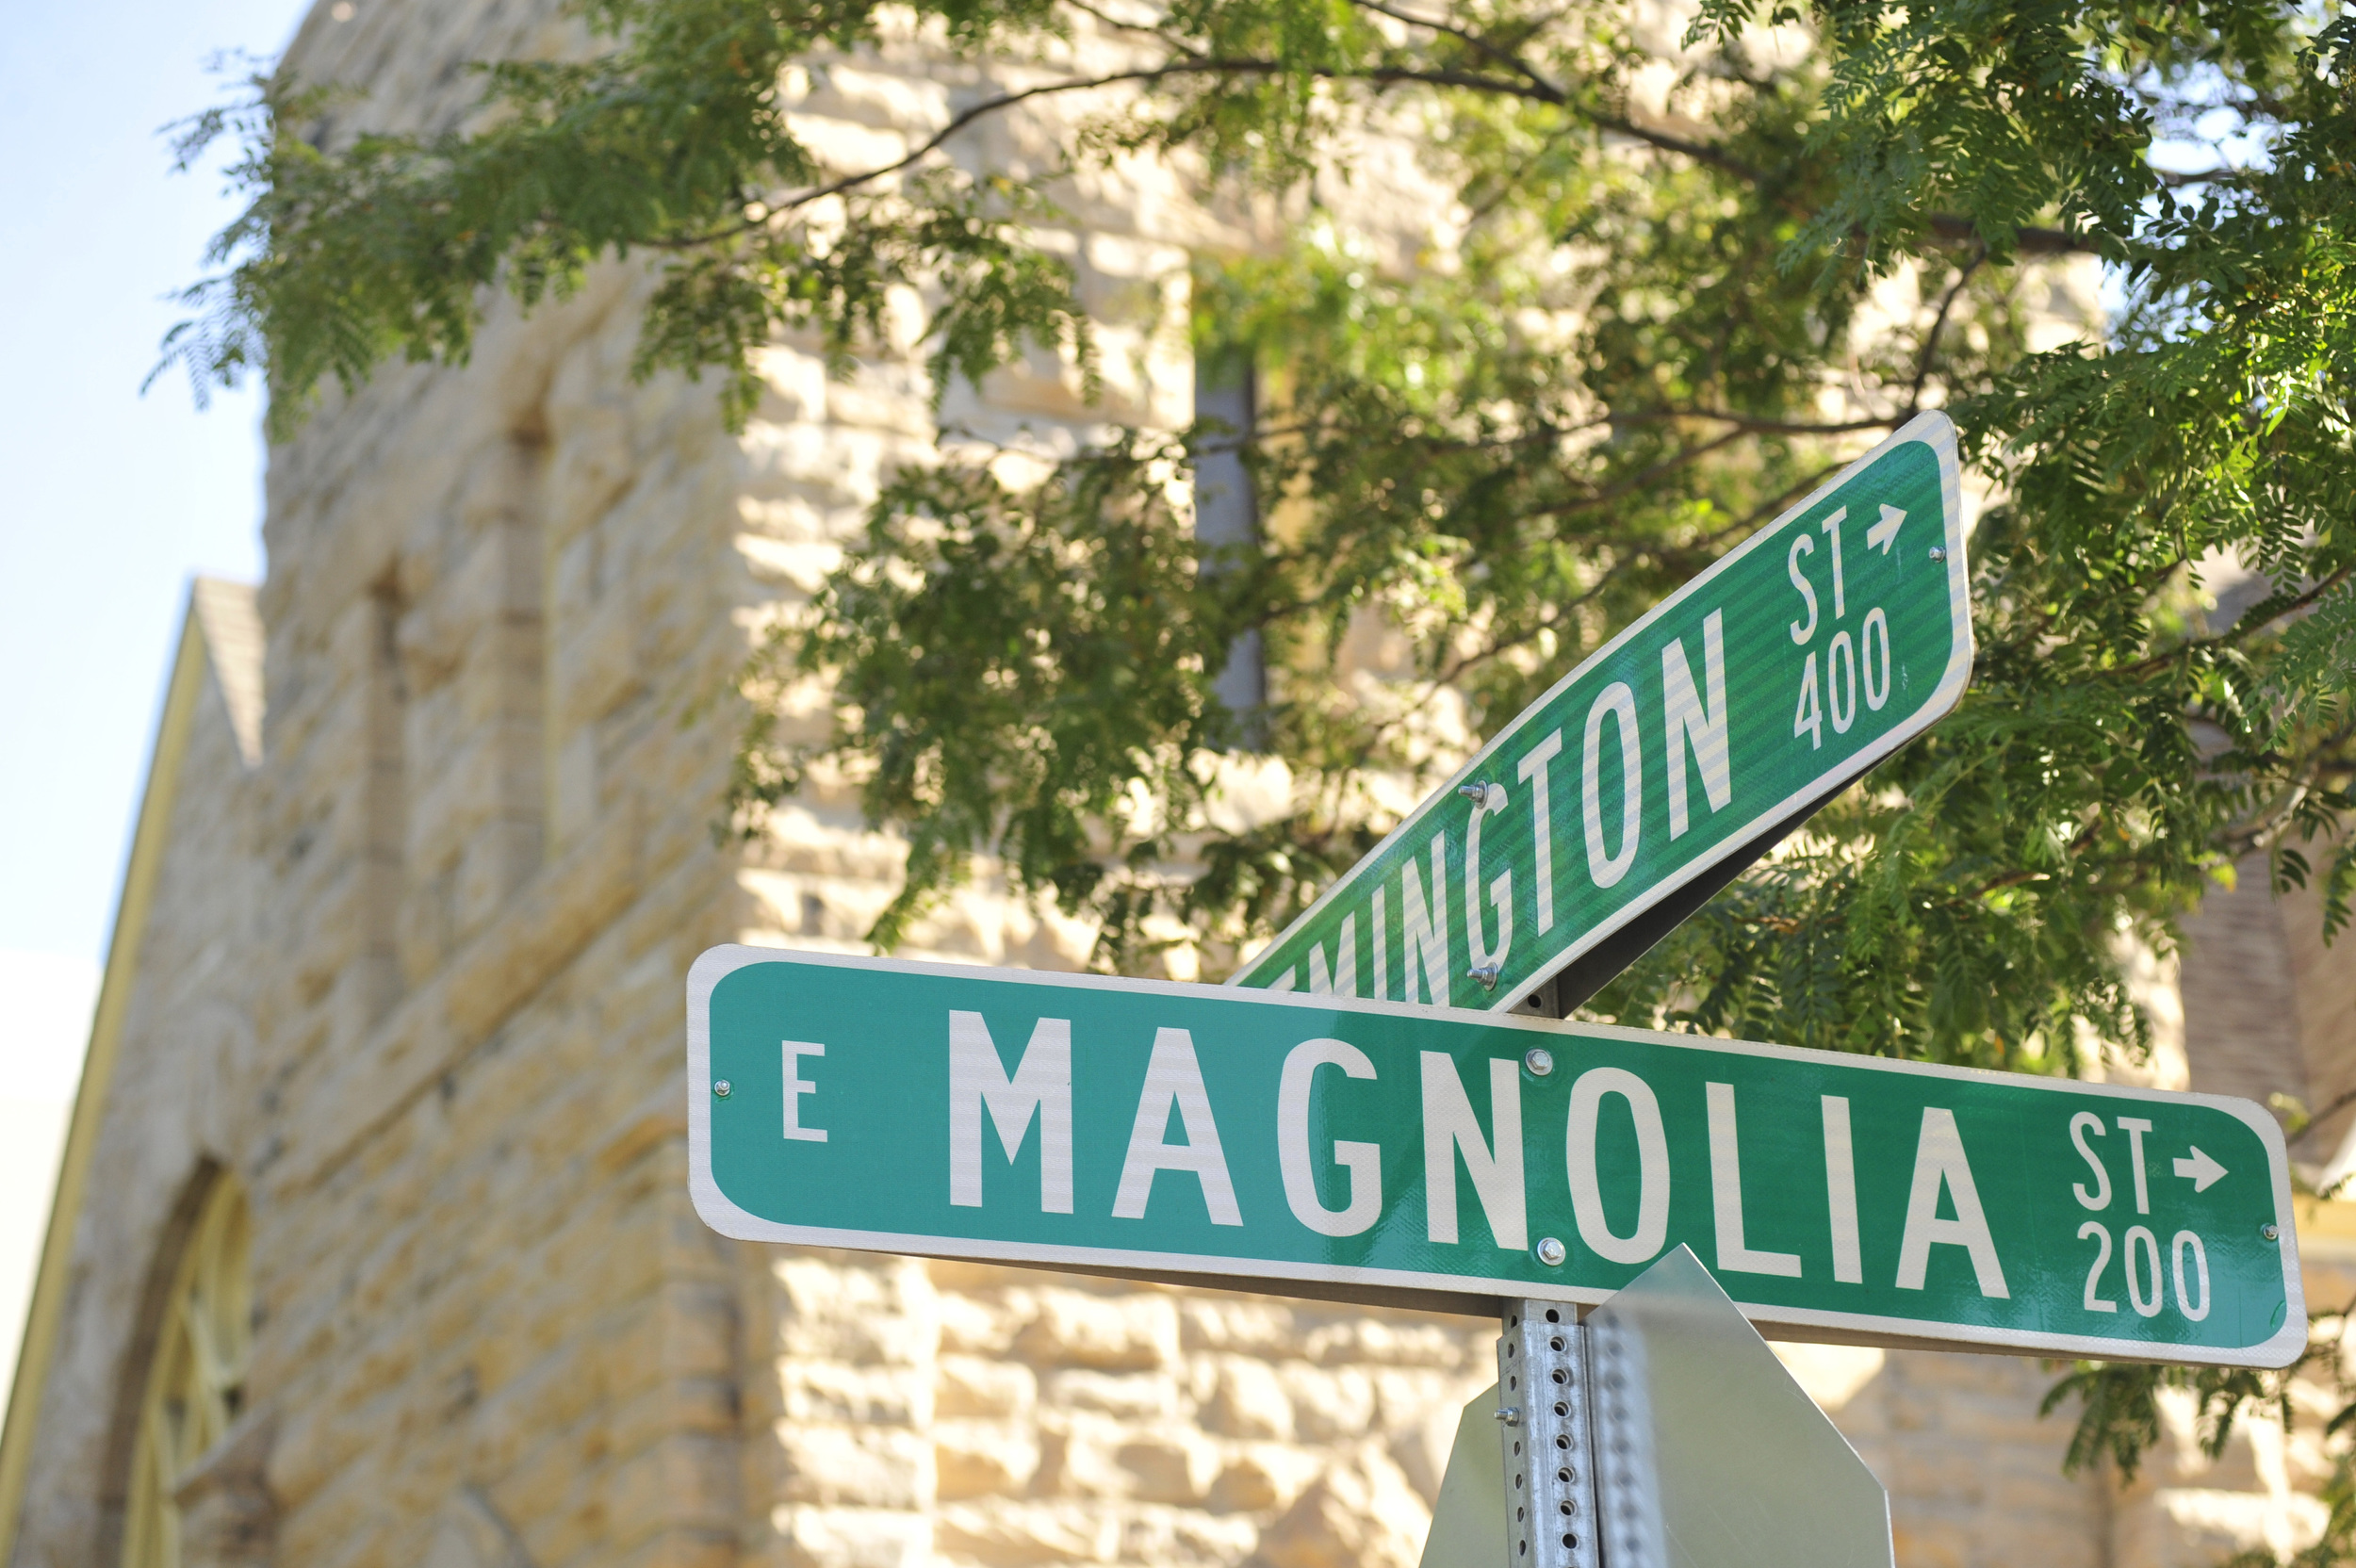 Our current building is locatedat the corner of Remington & Magnolia - inOld Town and near Colorado State University.